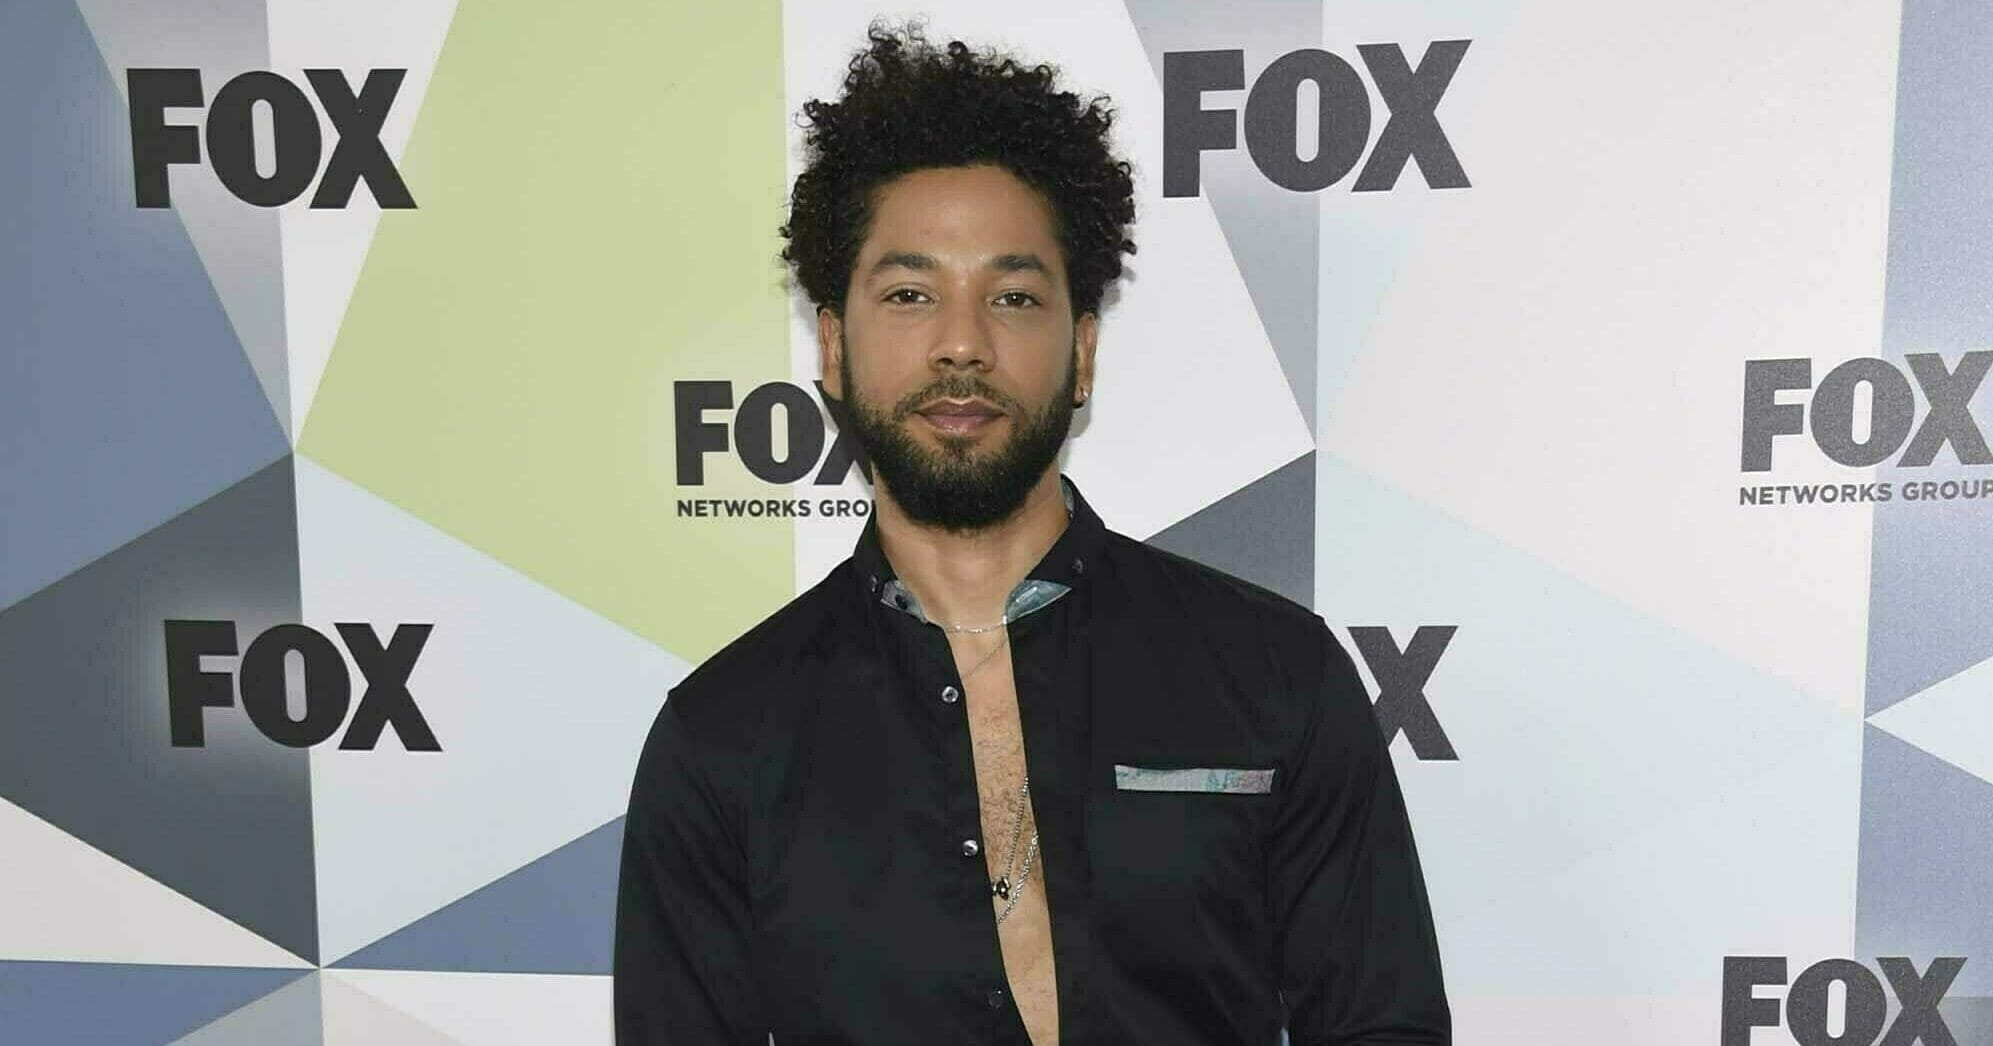 """In this May 14, 2018, file photo, Jussie Smollett, a cast member in the TV series """"Empire,"""" attends the Fox Networks Group 2018 programming presentation afterparty in New York."""